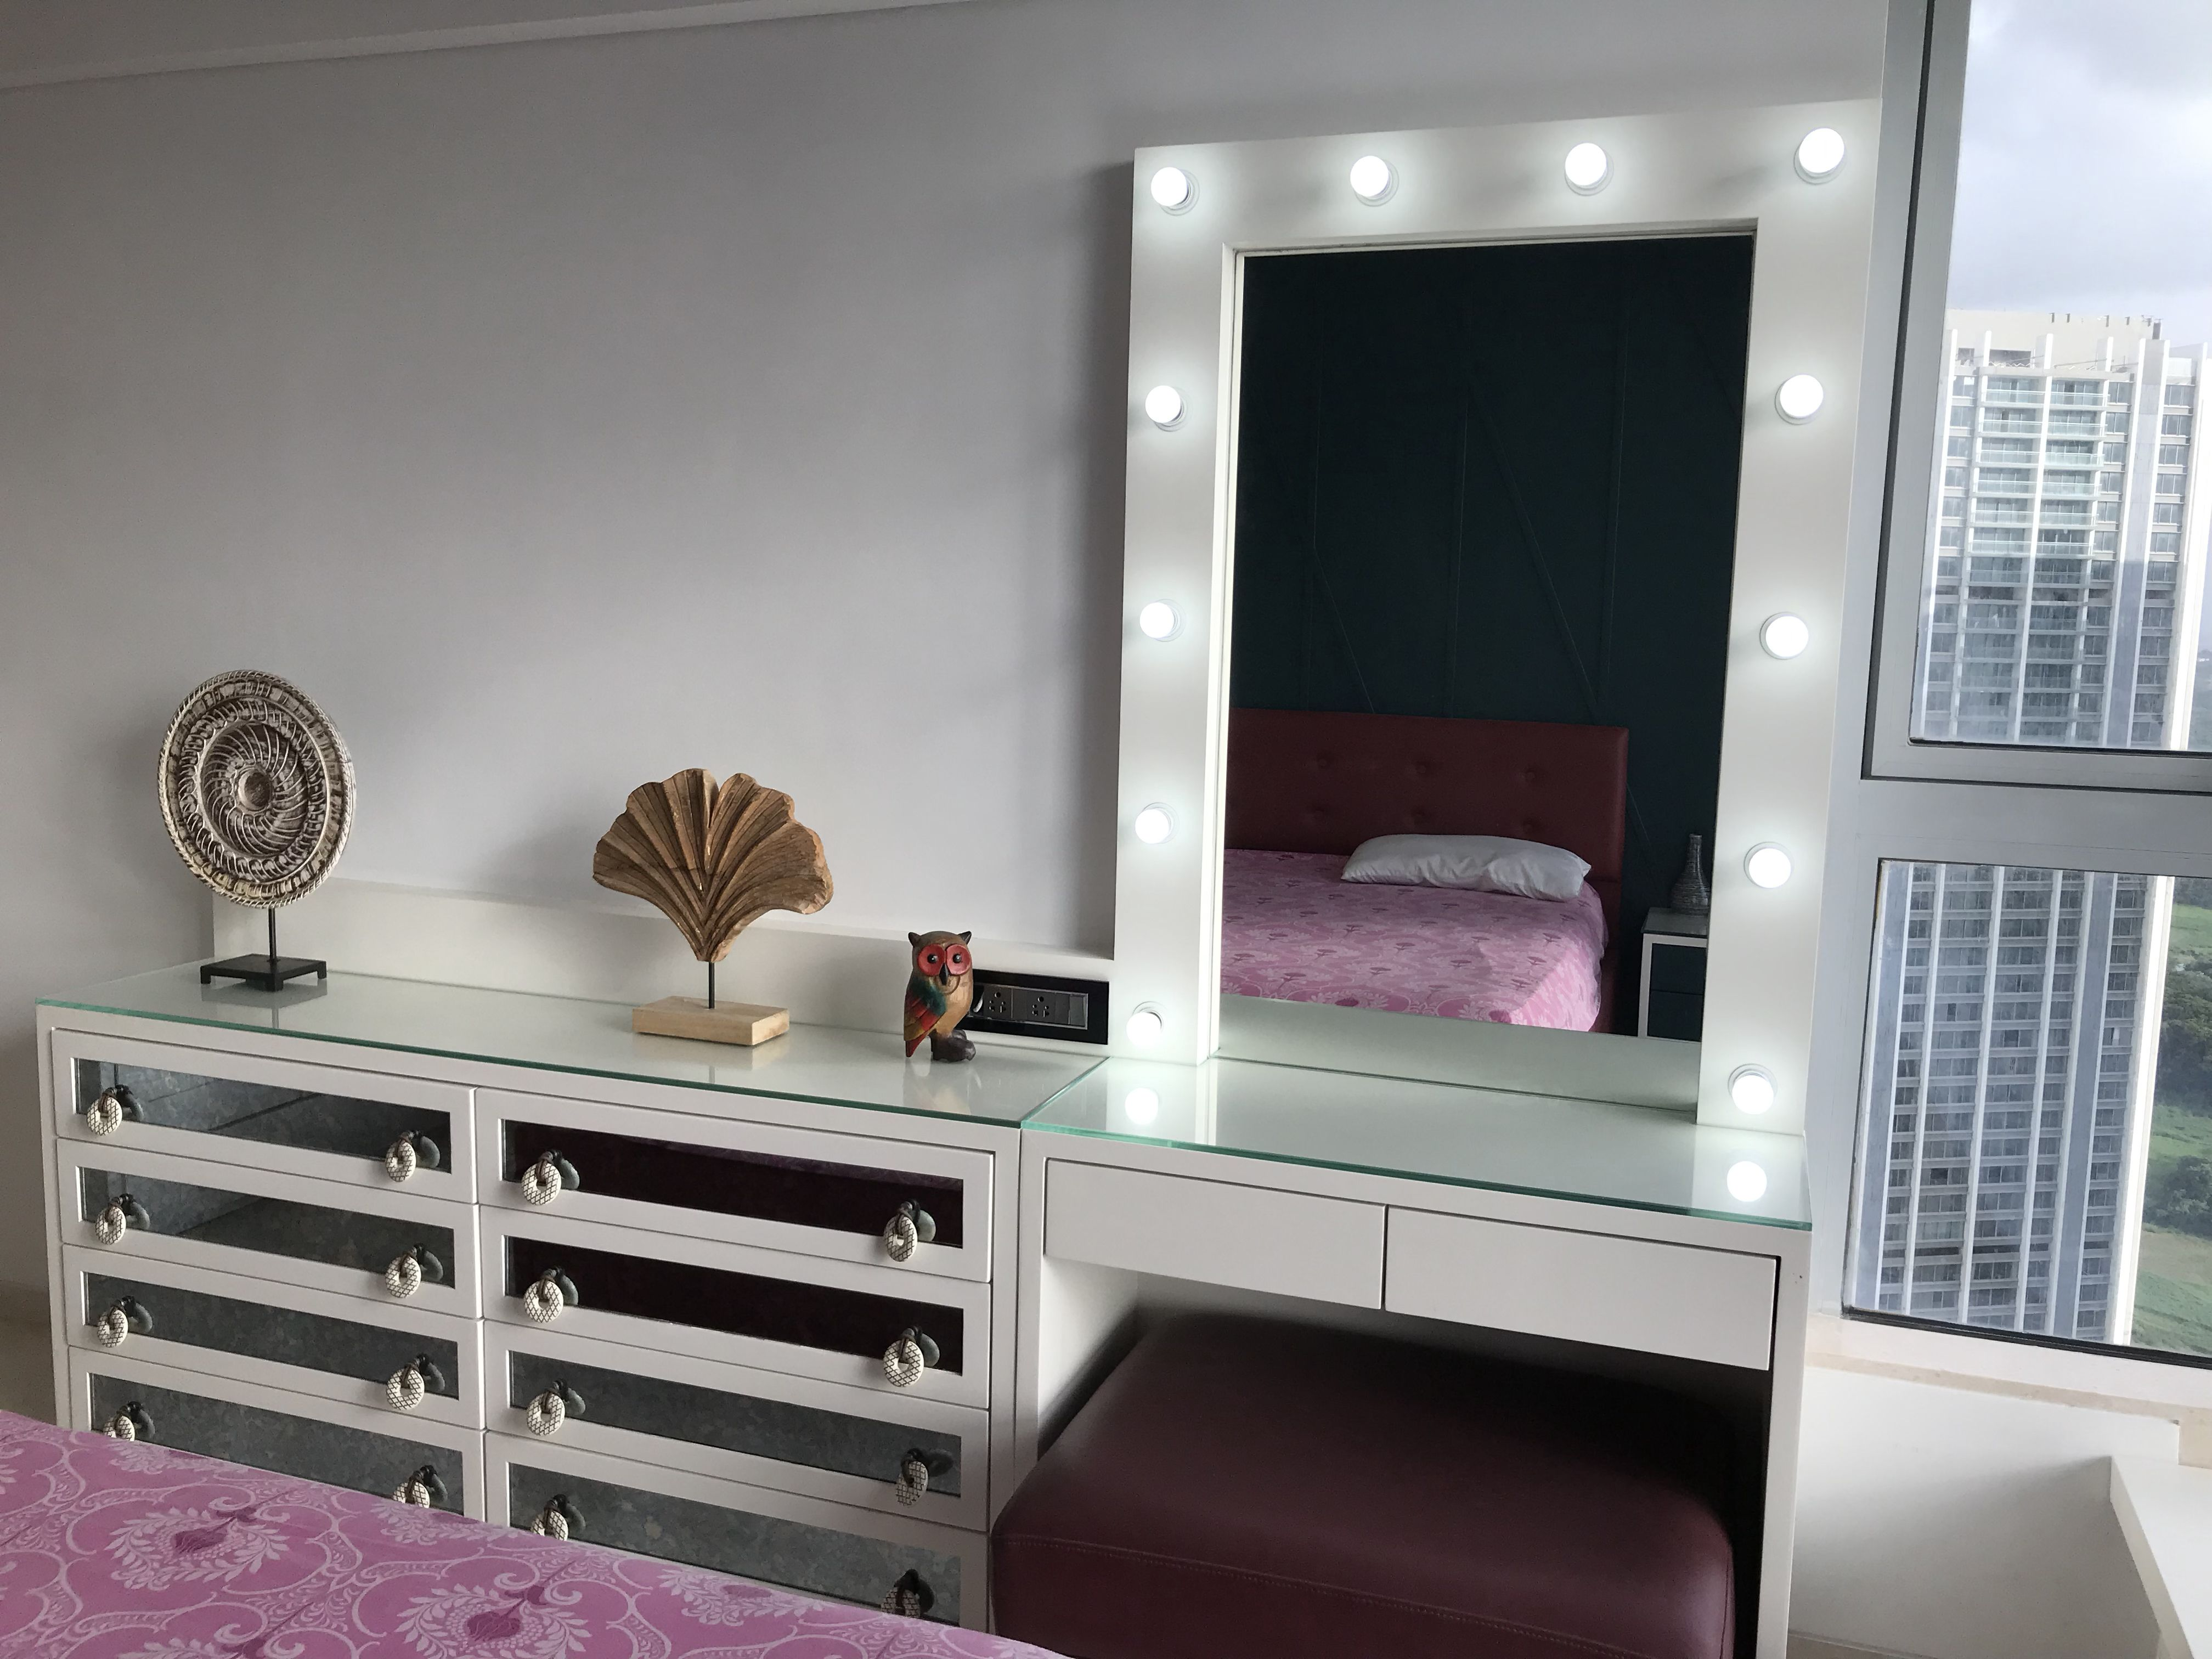 Vanity mirror | Teenage girl room, Teenage bedroom, House ... on Mirrors For Teenage Bedroom  id=13327